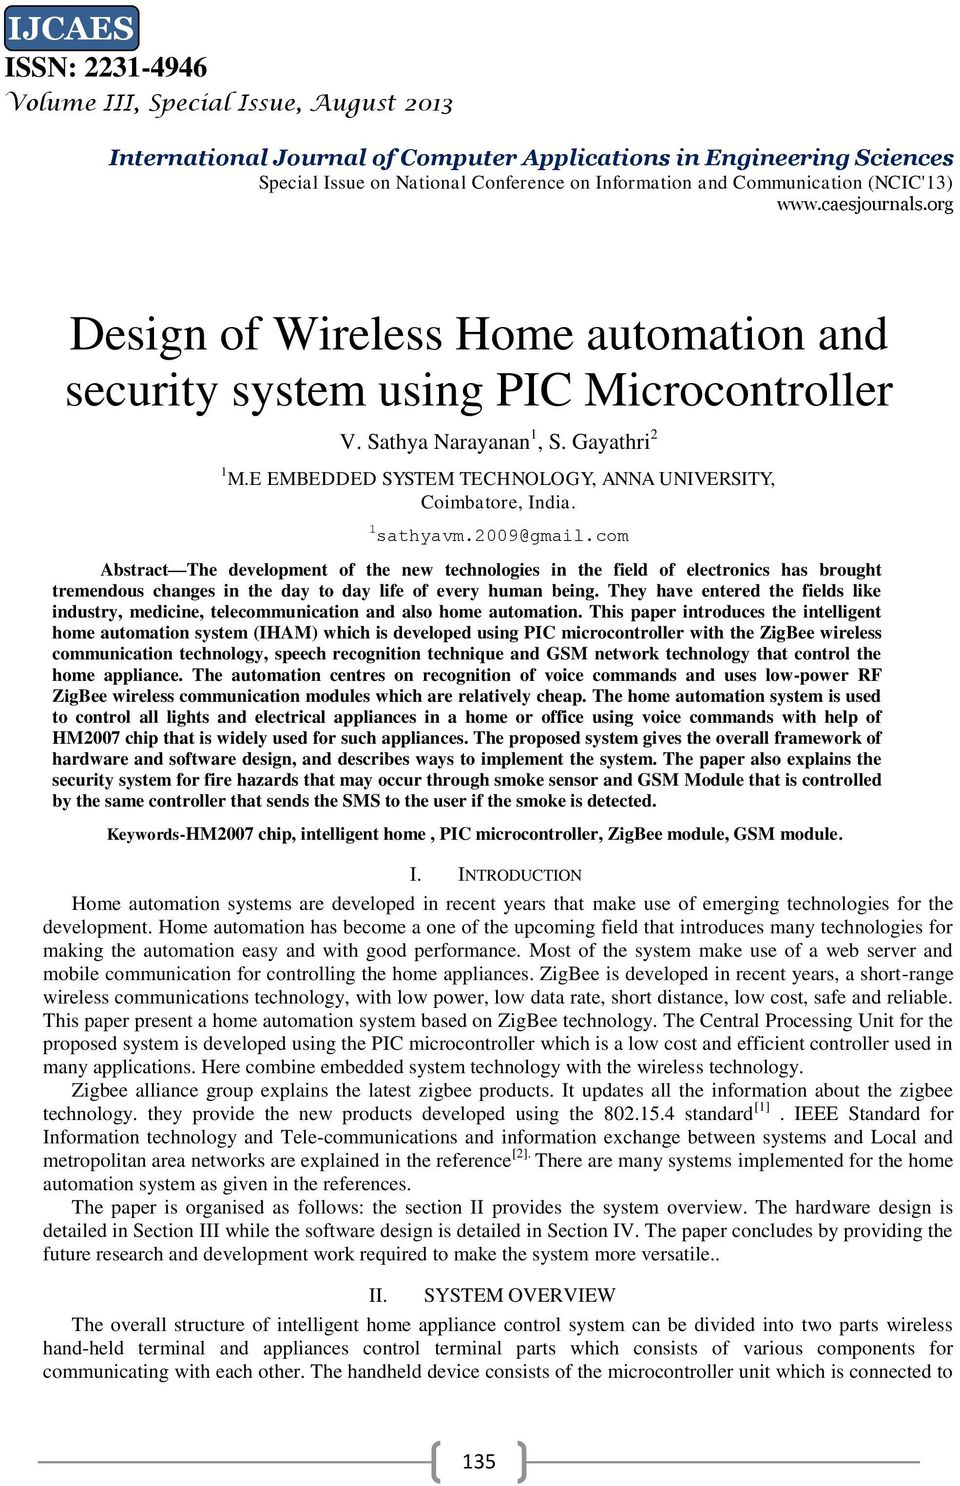 Design of Wireless Home automation and security system using PIC ...